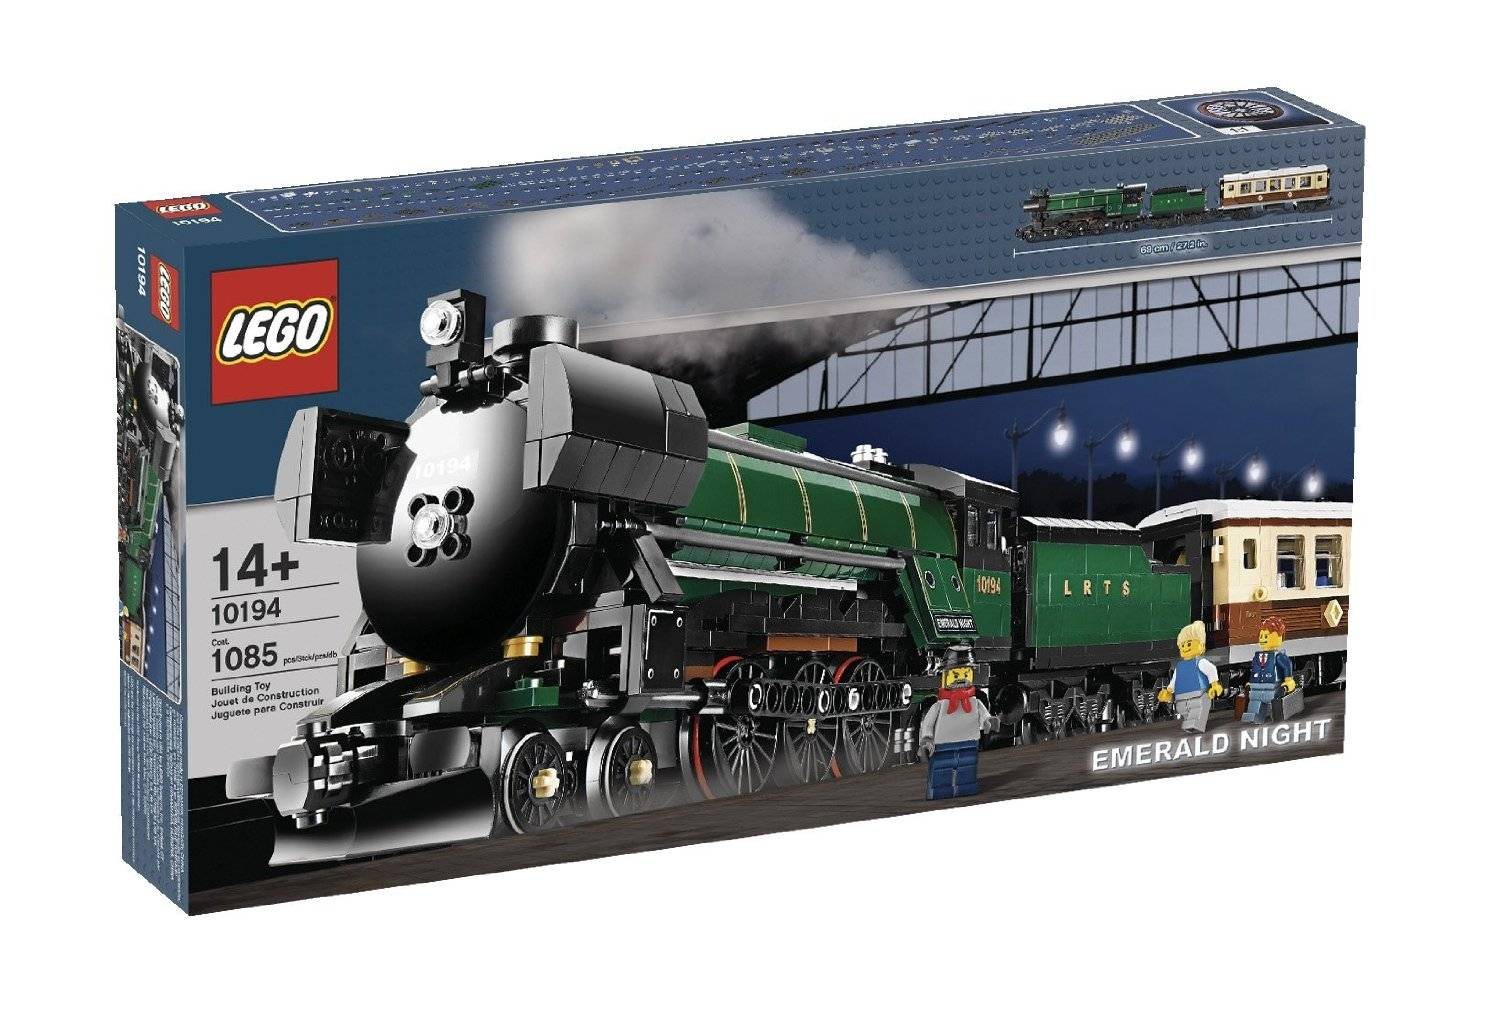 WHOLESALE LEGO Creator Emerald Night Train 10194 Sets